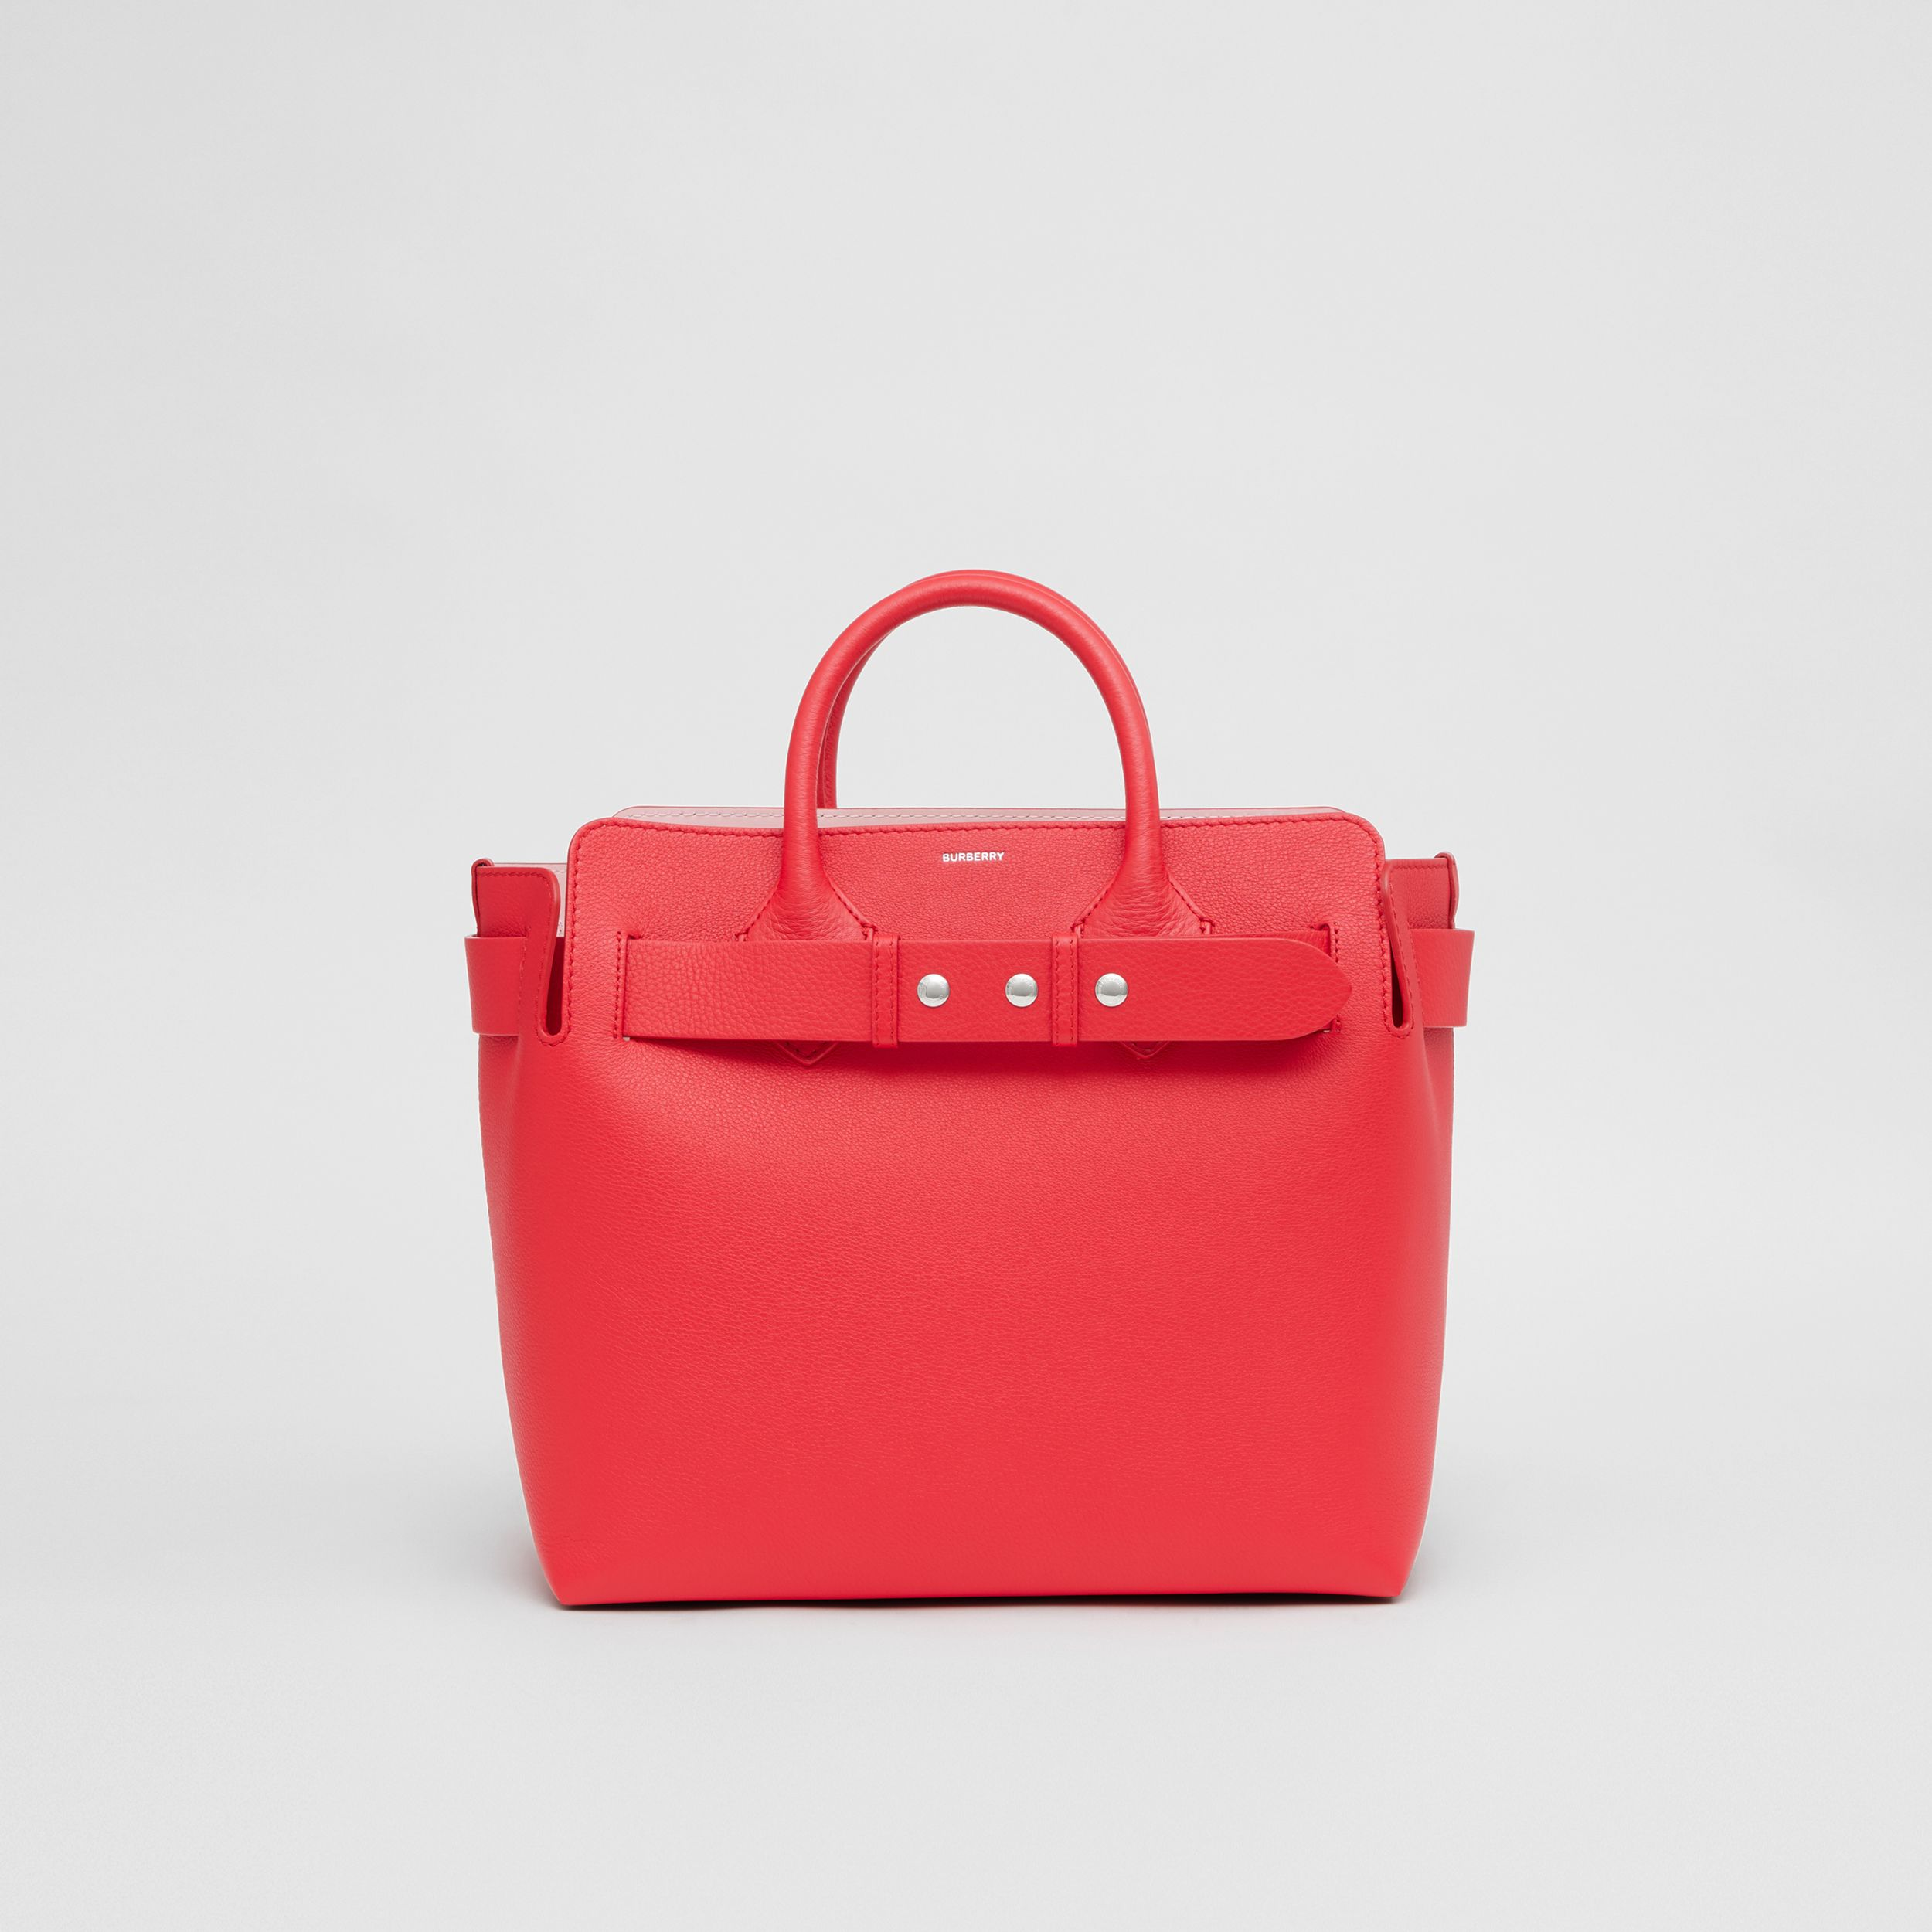 Borsa The Belt media in pelle con tre borchie (Rosso Intenso/rosa Alabastro) - Donna | Burberry - 1